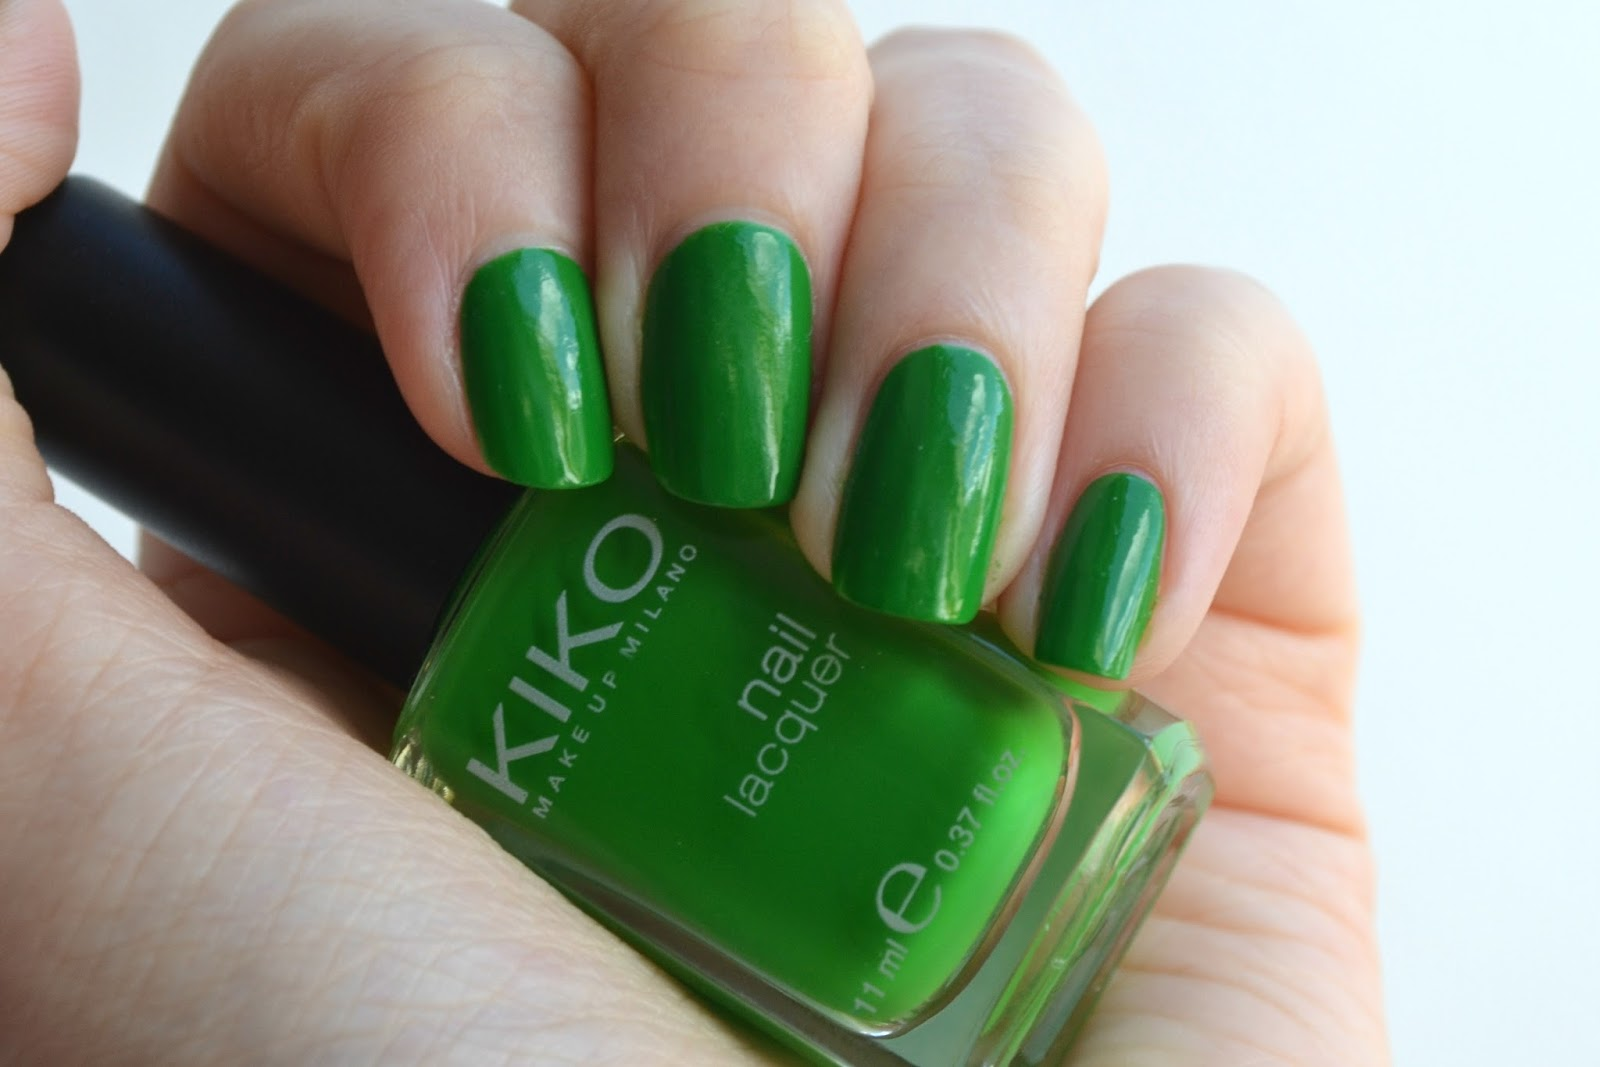 KIKO Nail Lacquer in Grass Green!